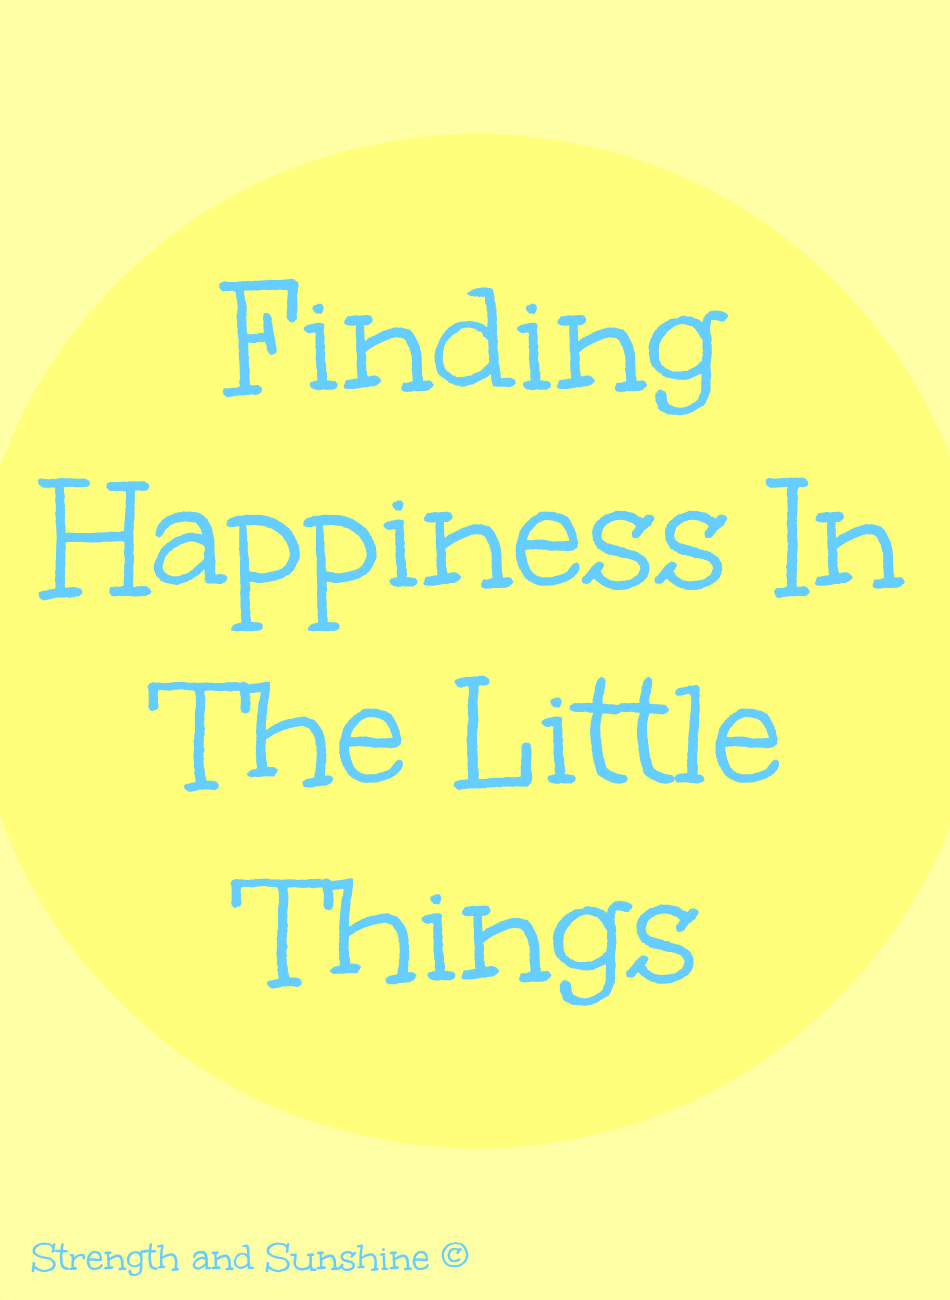 Finding Happiness In The Little Things | Strength and Sunshine @RebeccaGF666 #happiness